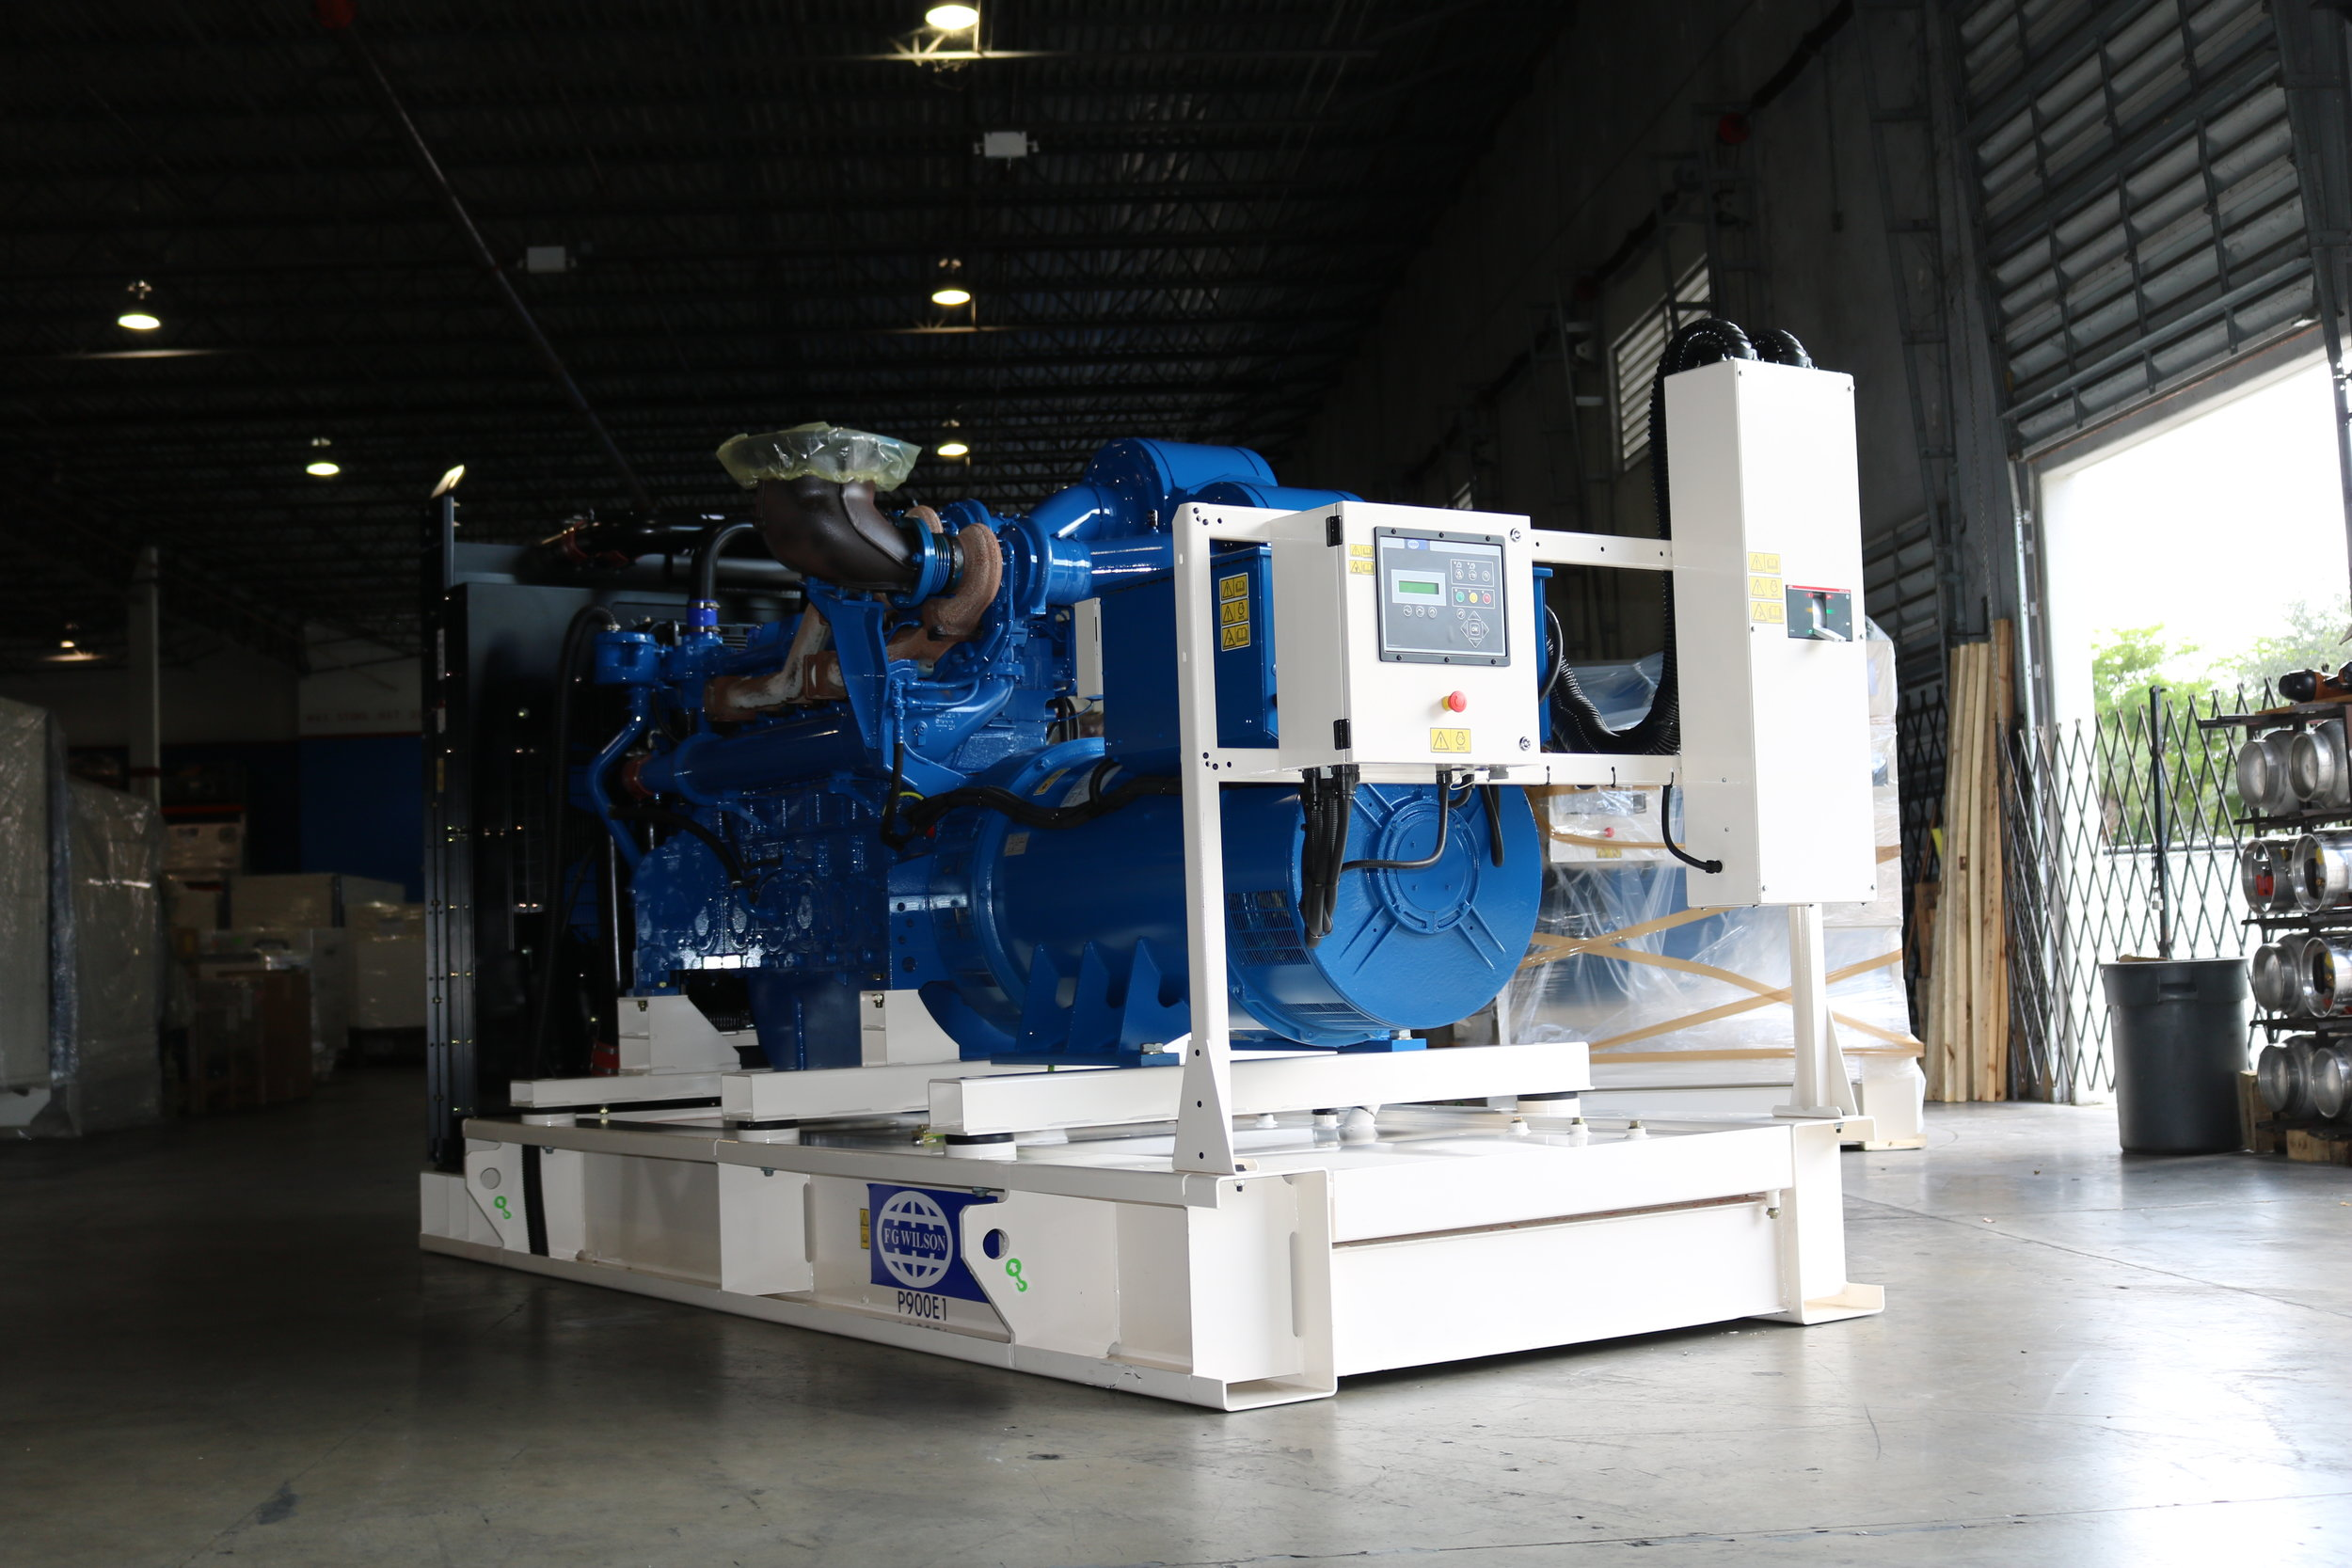 Power 24/7 for The Bahamas with FG Wilson Generators